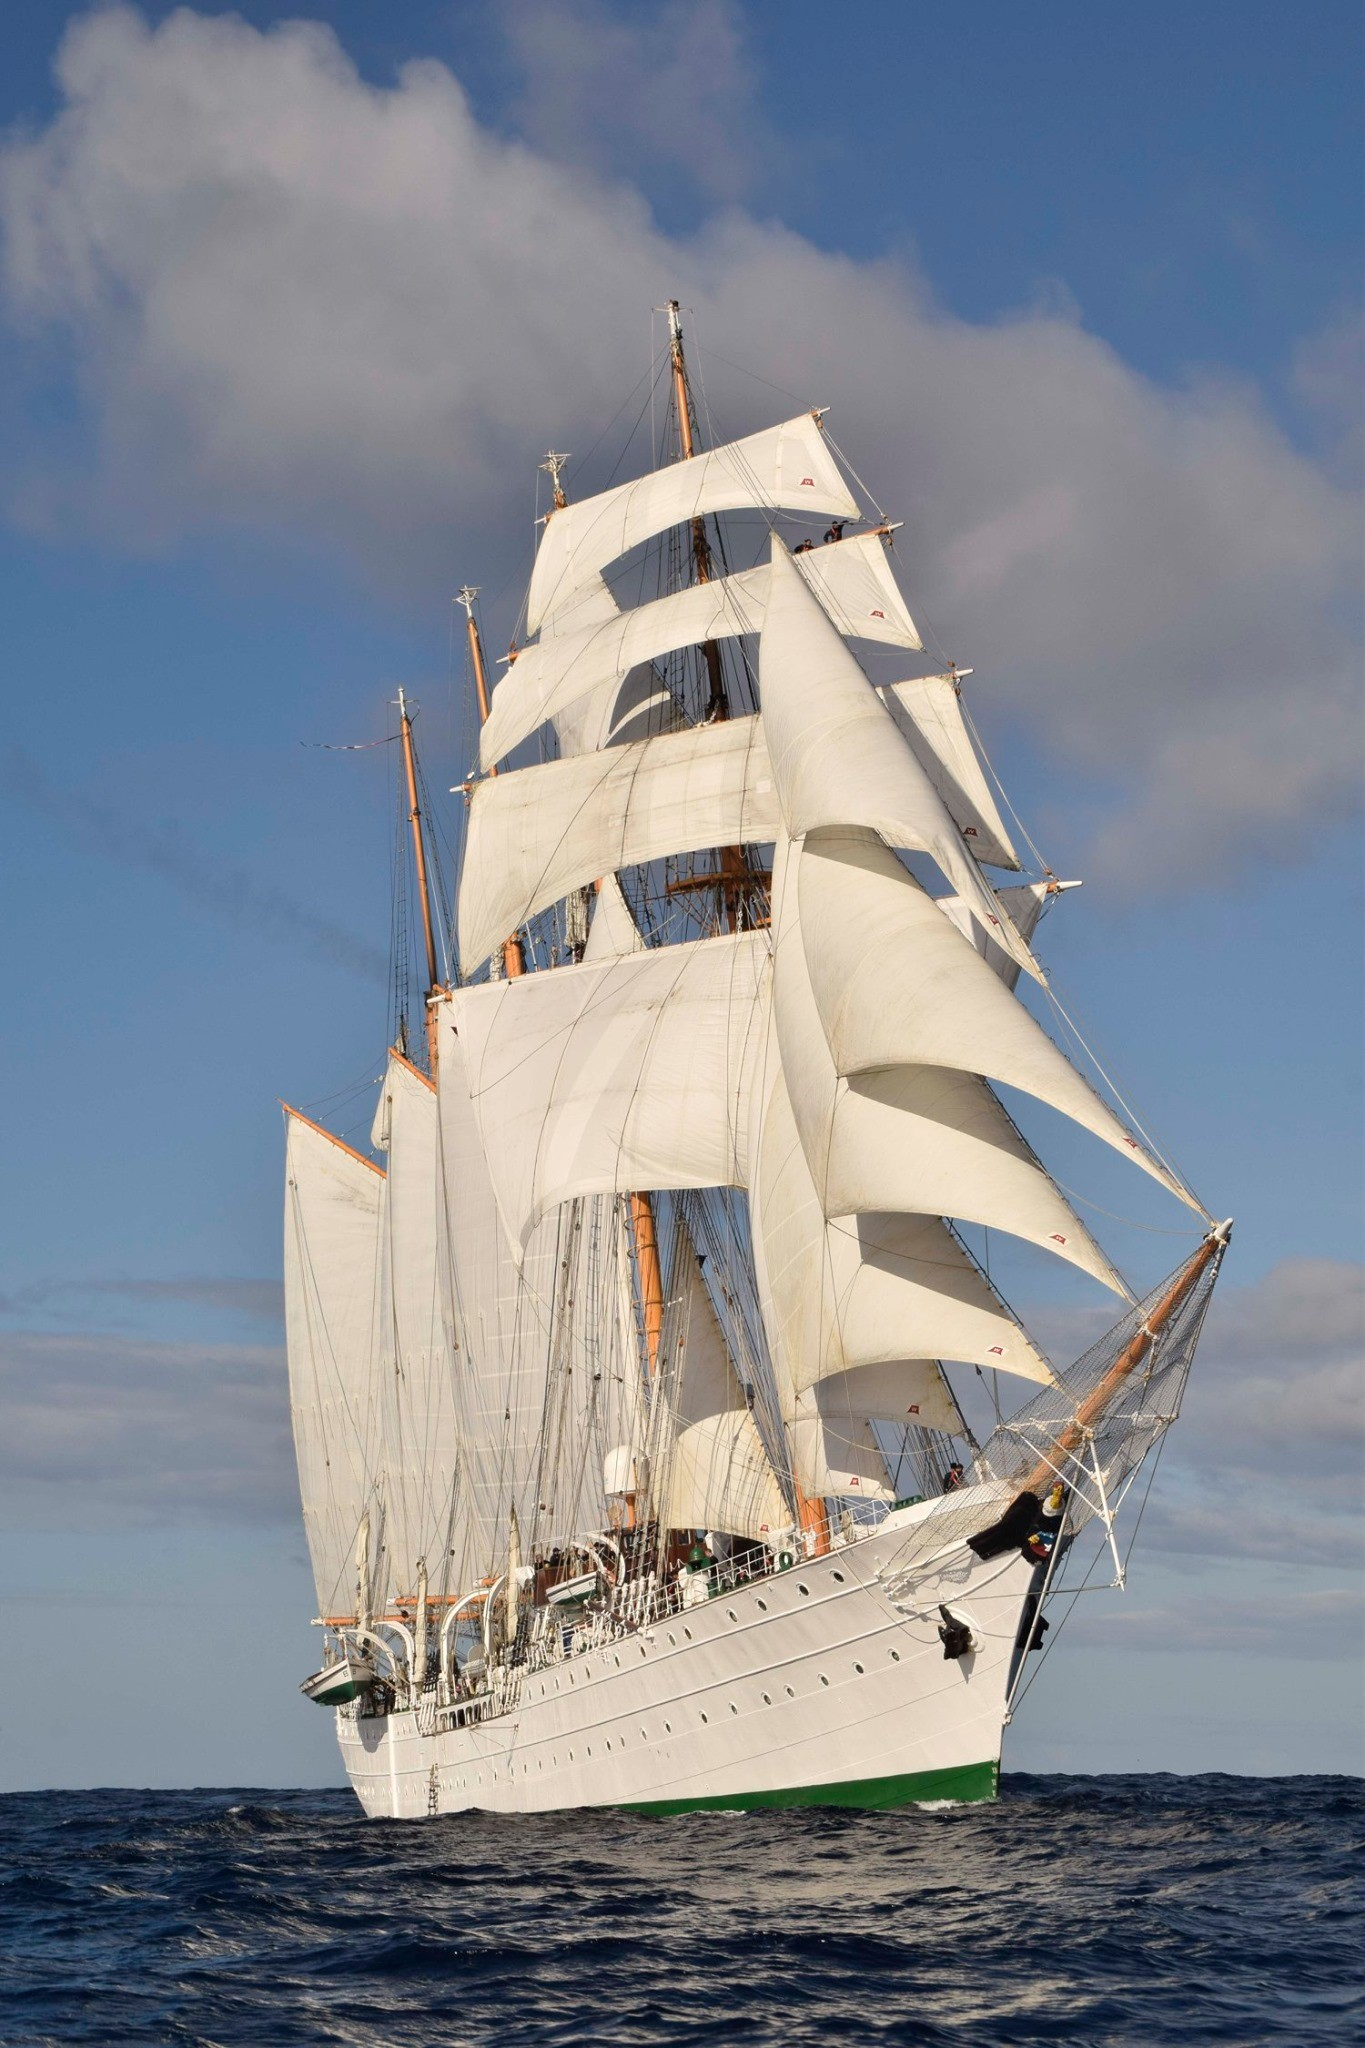 The Chilean navy's prized tall ship Esmeralda sailing to Sydney, Australia, after leaving Auckland, New Zealand, in July 2019.